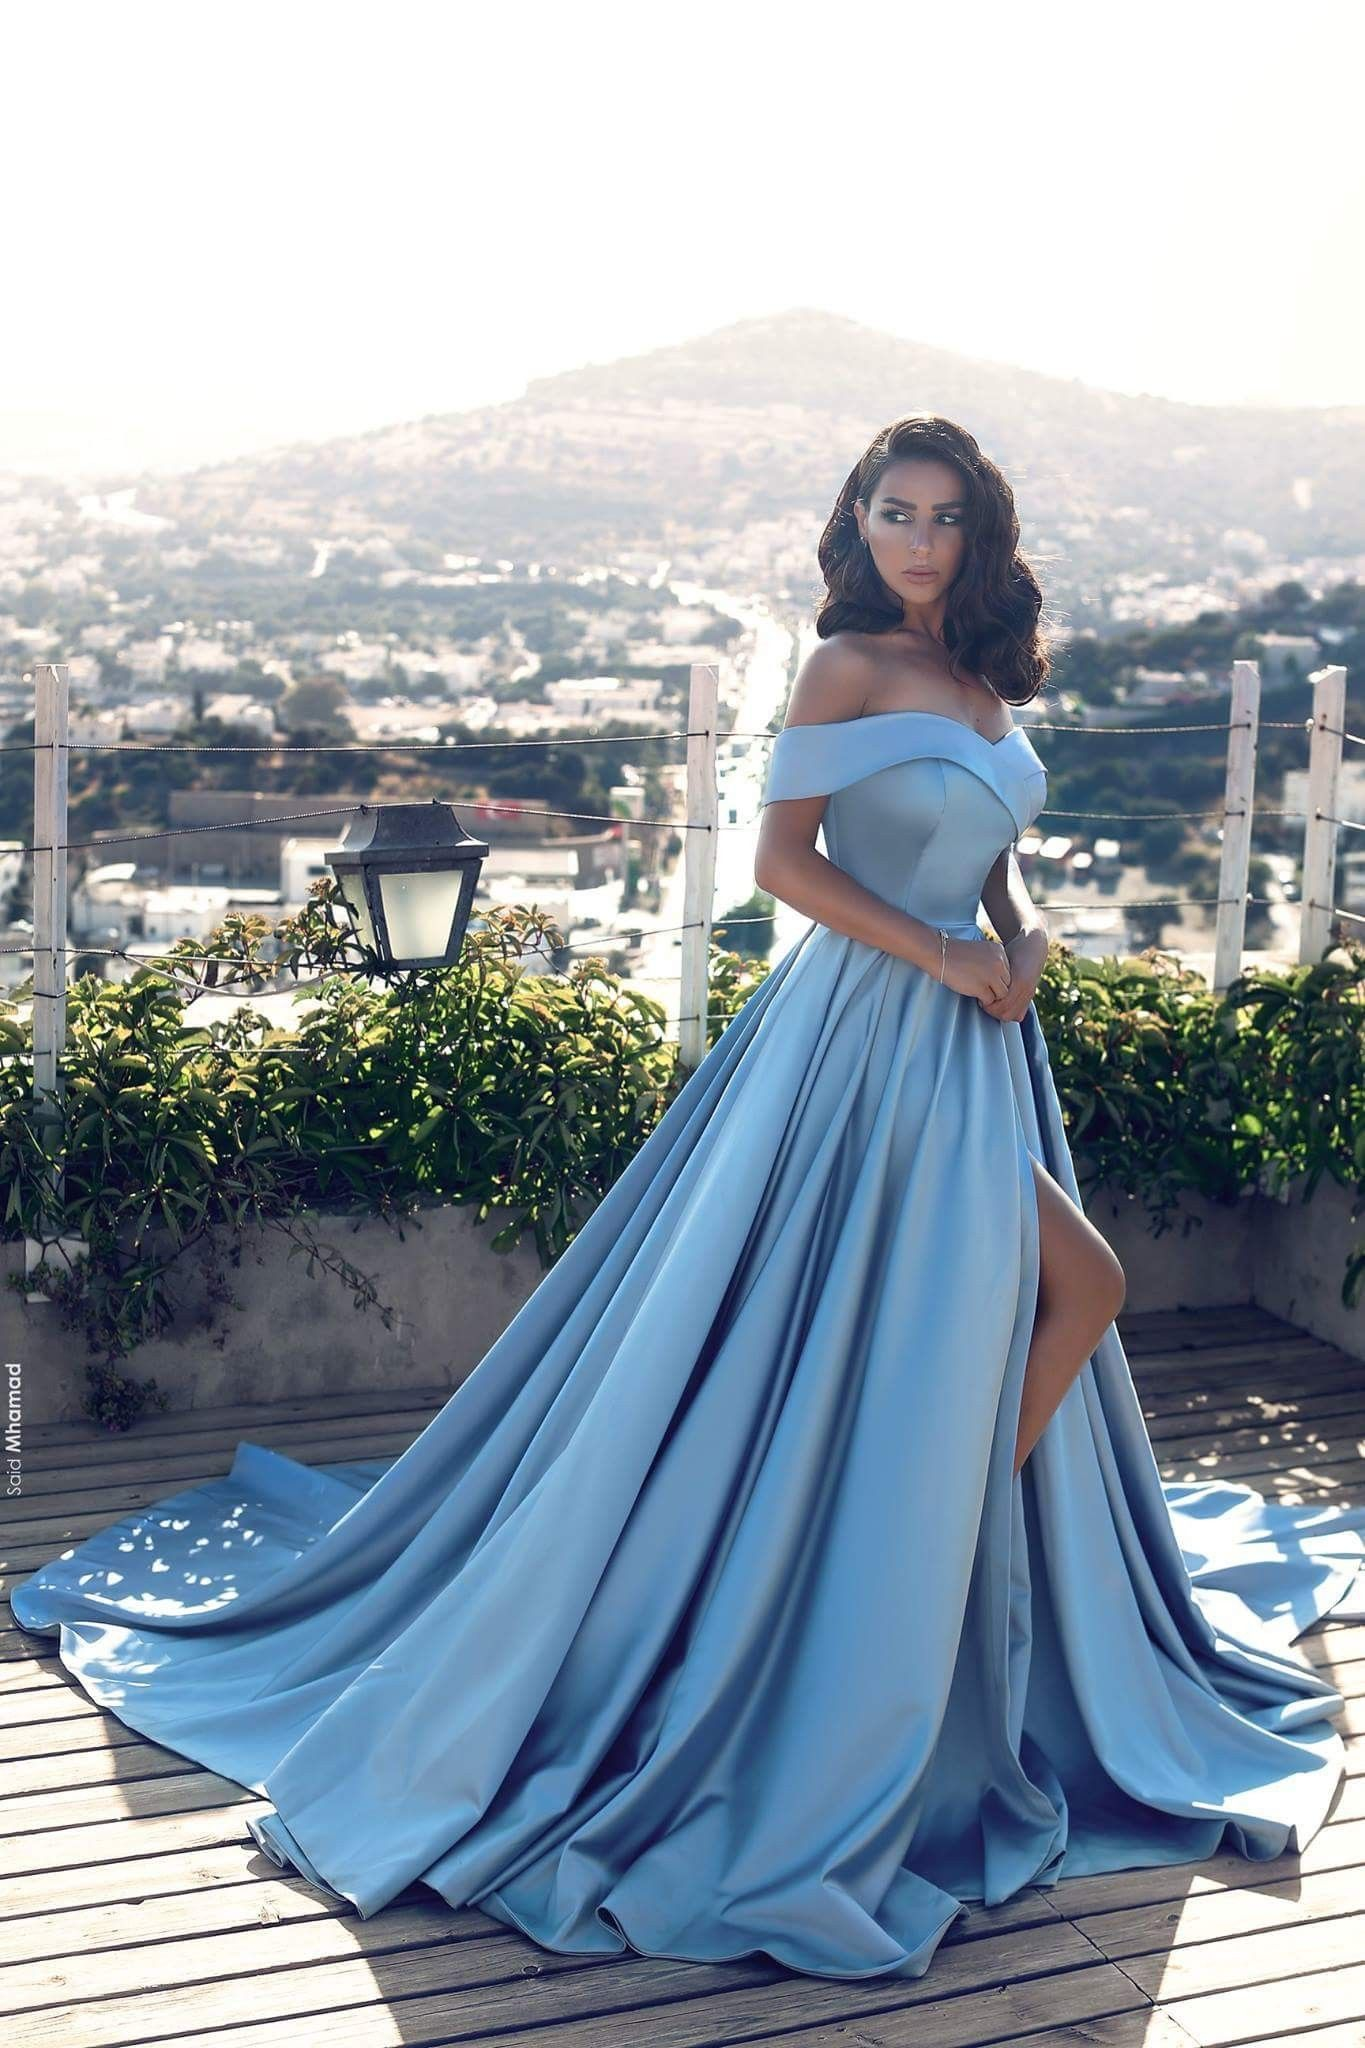 Pin by Suzanne Palmer on Couture dresses | Pinterest | Exotic and ...